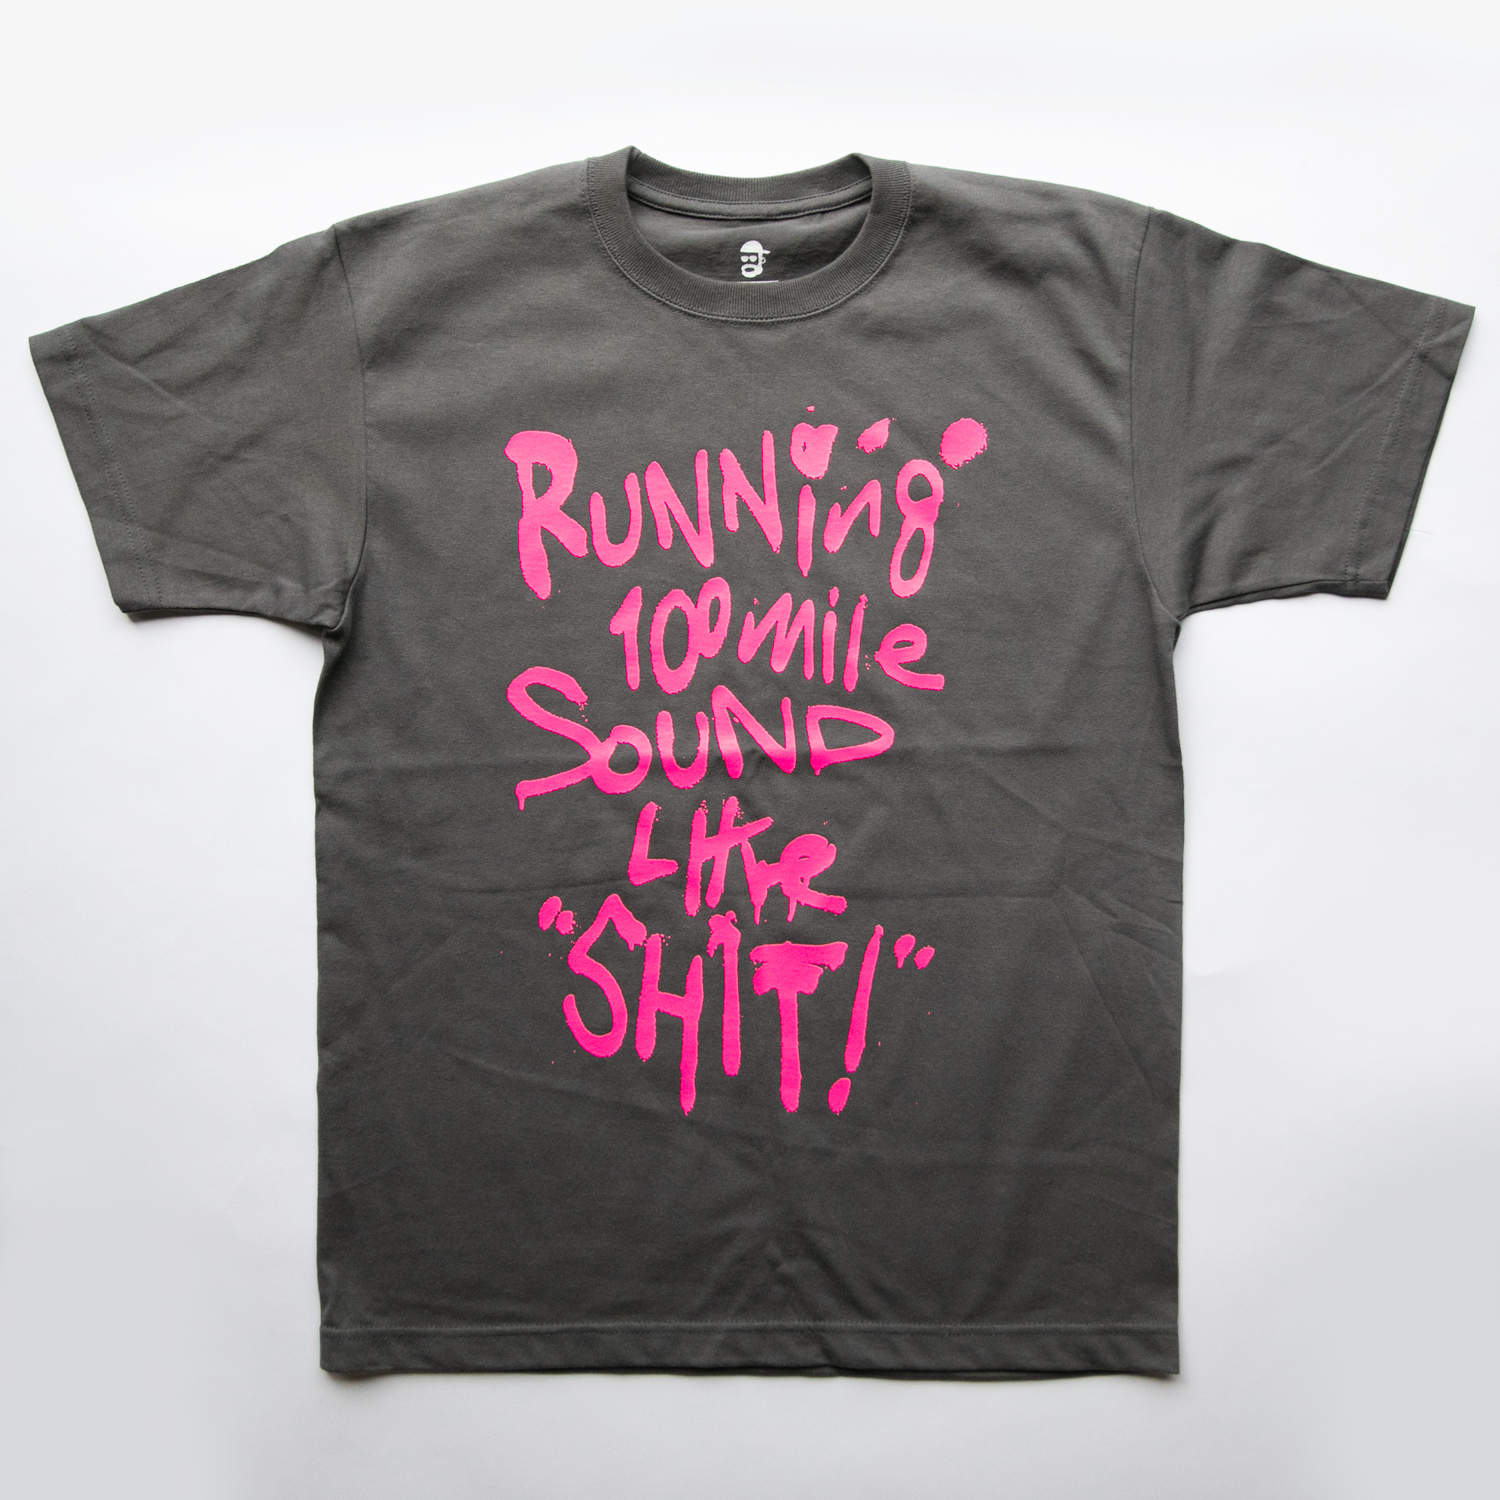 Running 100mile Sounds Like SHIT! t-shirt by RYUJI KAMIYAMA (PINK)